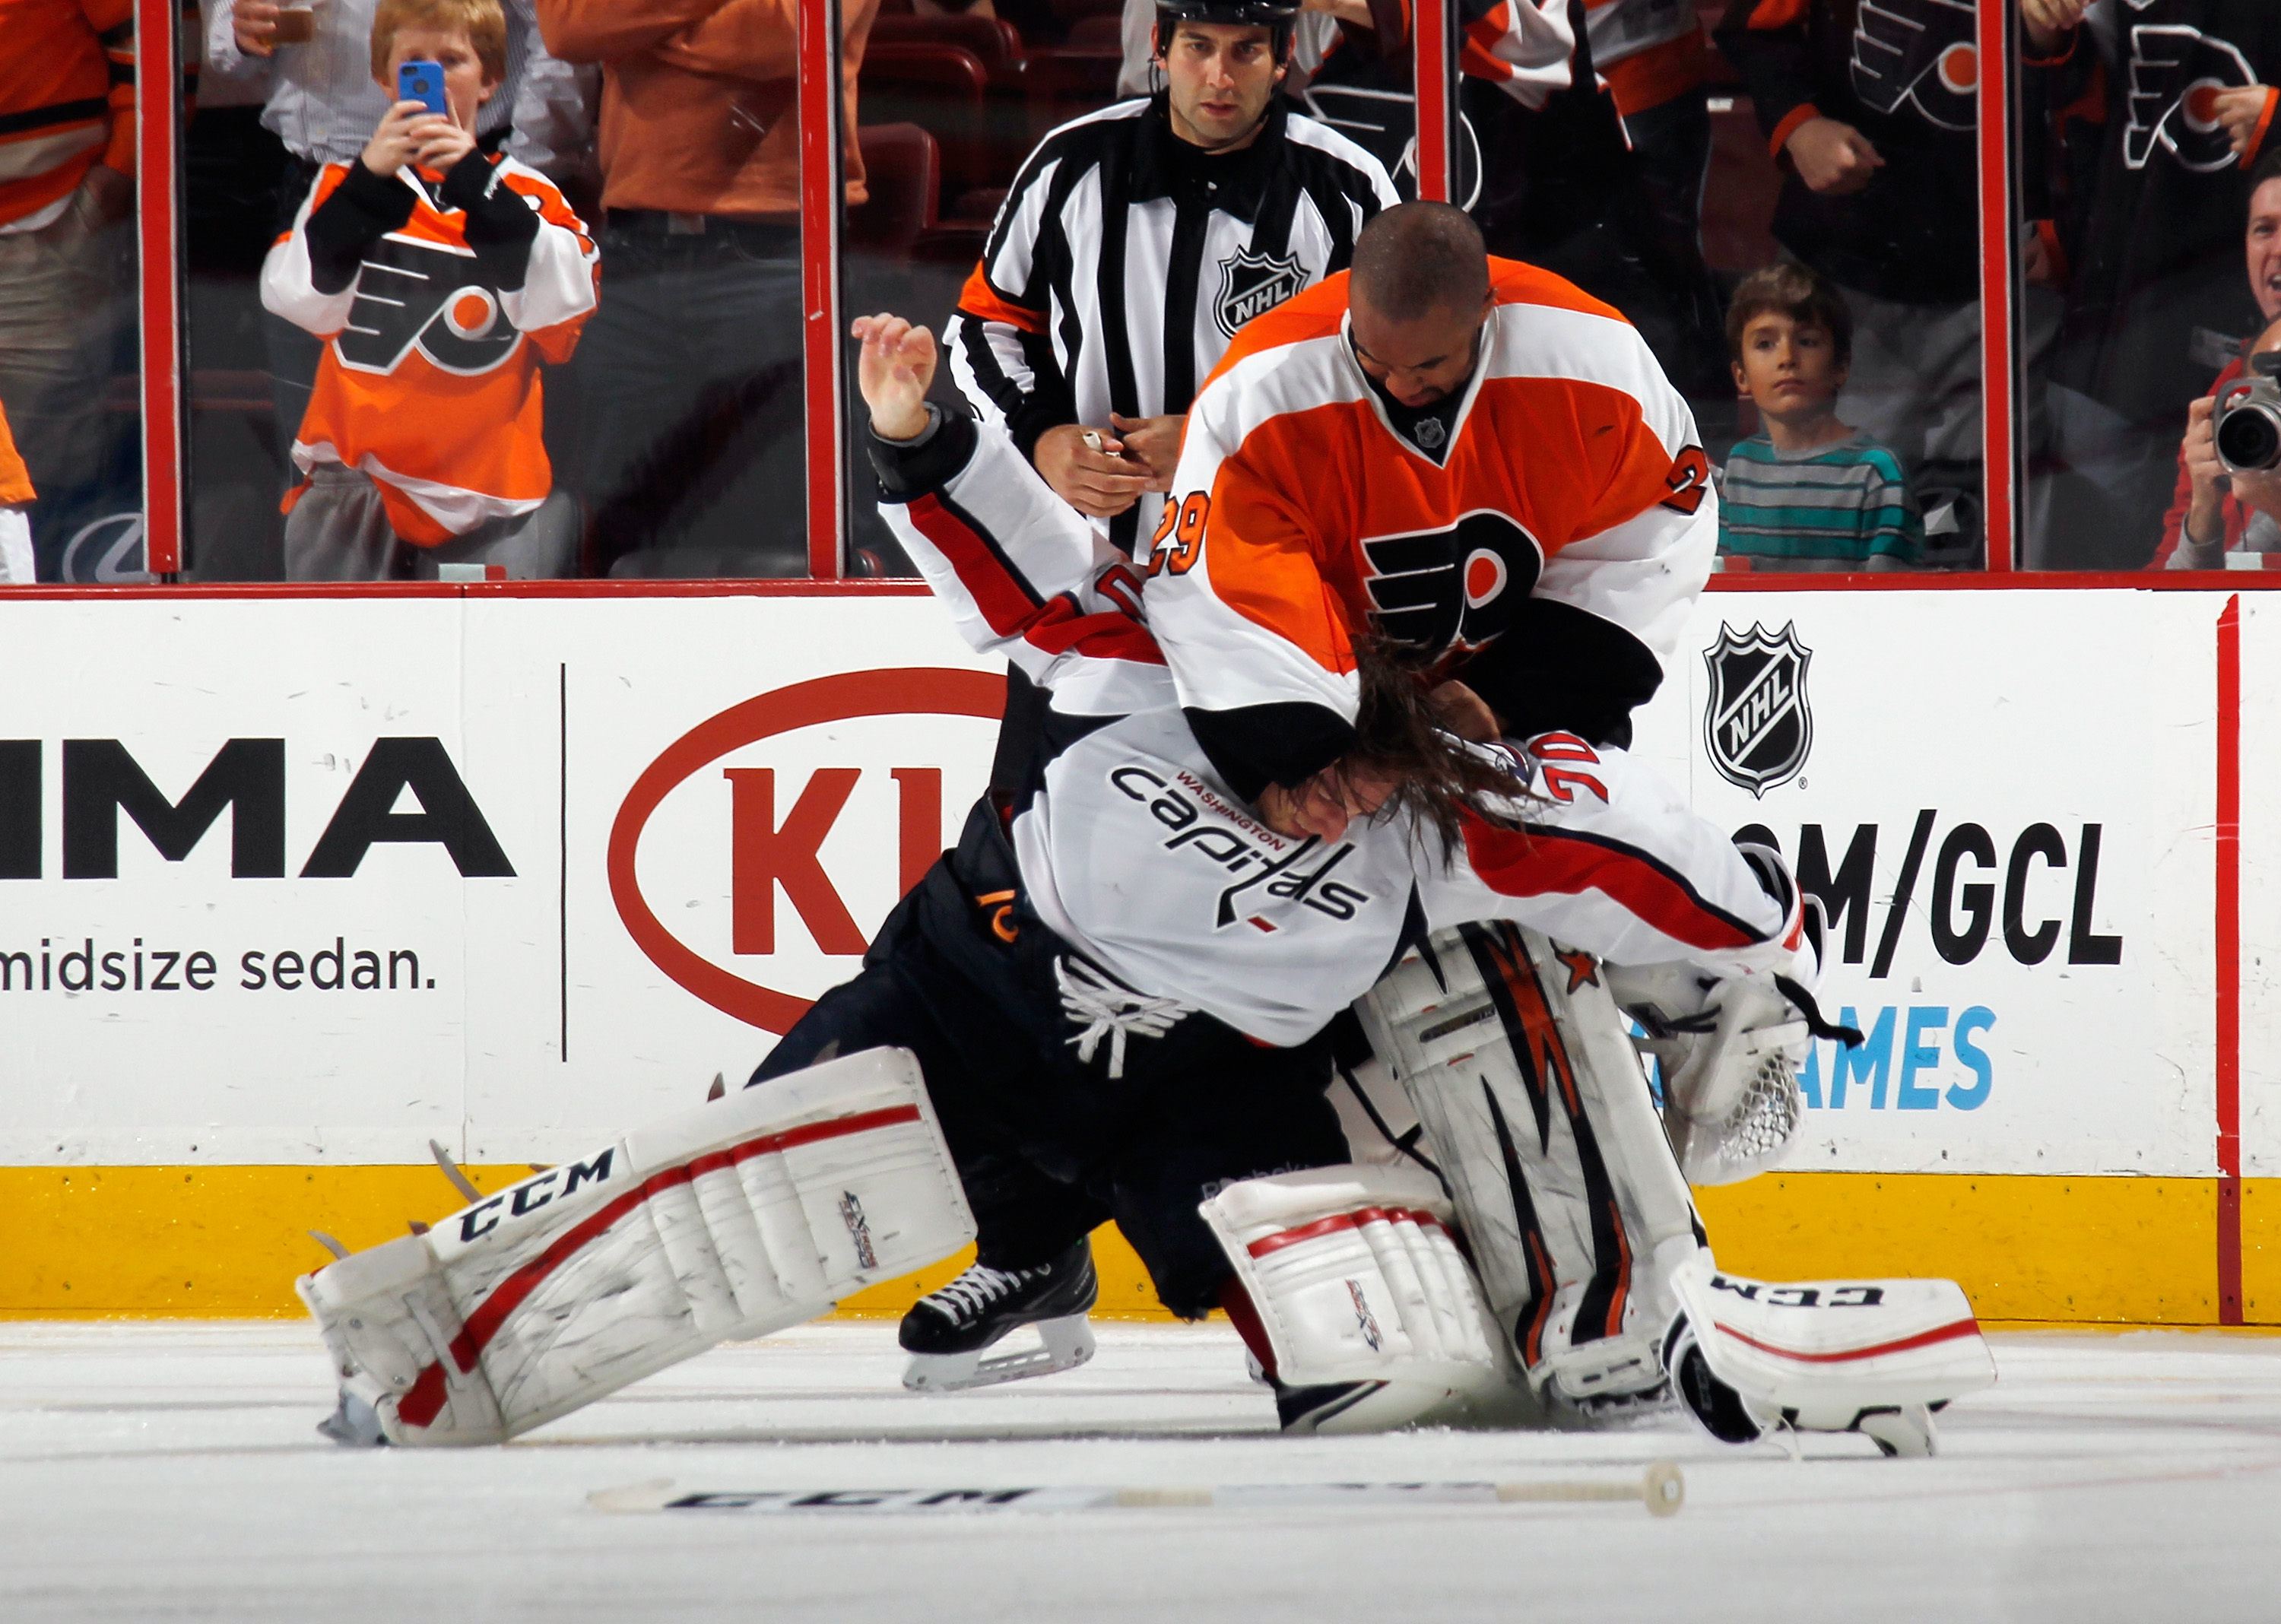 Ray Emery Ray Emery to join Flyers on try out contract yes seriously in